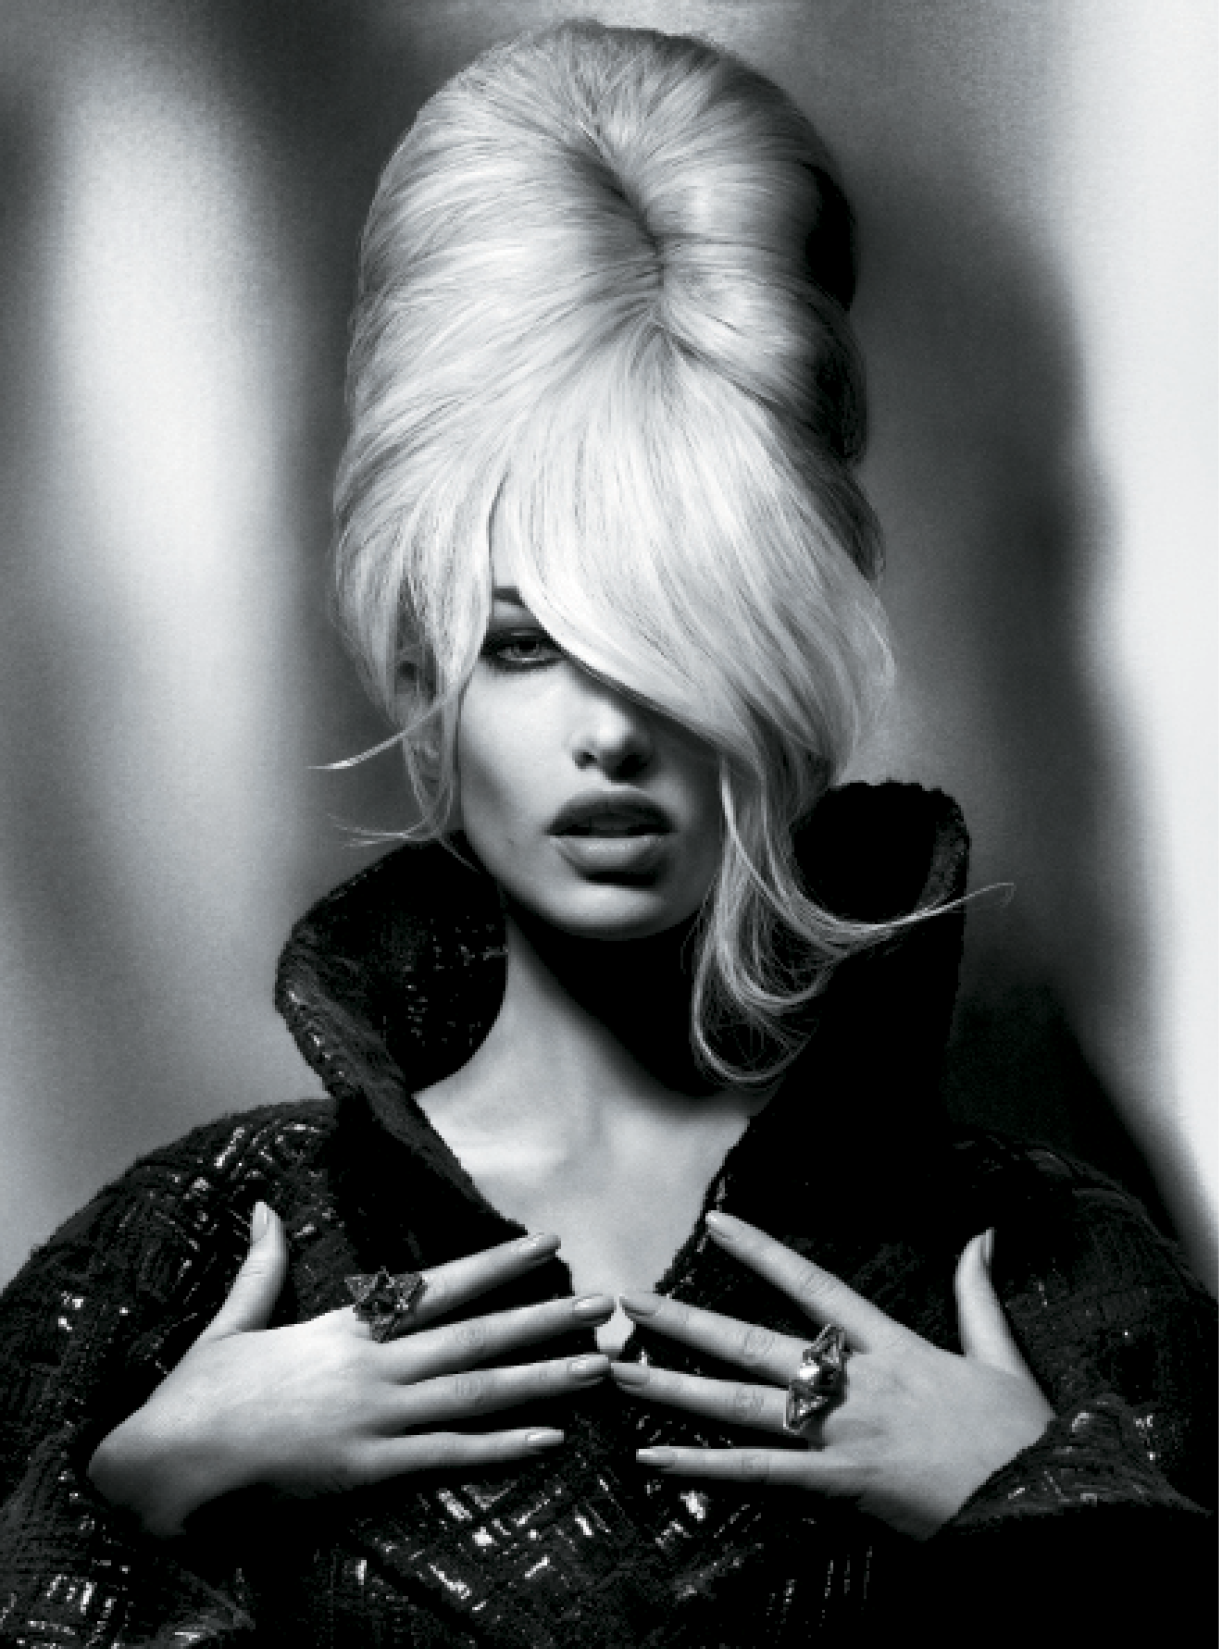 For this sexy shape, Leeson worked volumizing mousse into damp hair, blow-drying it with a large radial brush to amplify shape and movement. Next, he set strands on large heated rollers to enhance bulk and flexibility, then used a backcombing technique in the root area to boost height. Leeson called on a soft bristle brush to smooth layers and give direction to the vertical pleat.